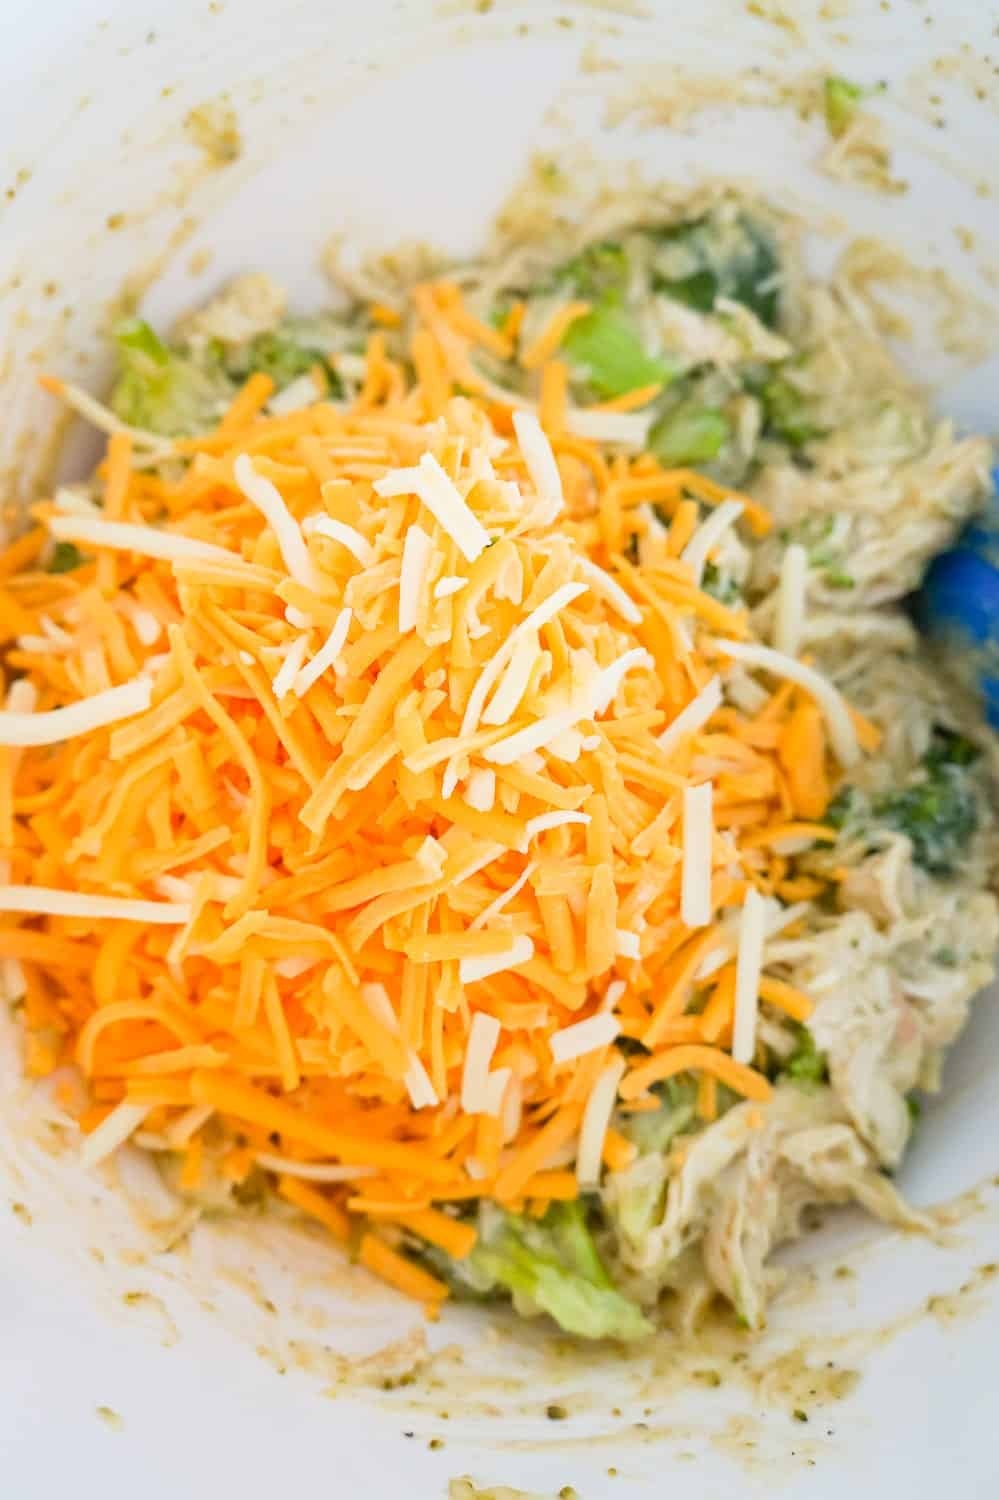 shredded cheddar cheese on top of chicken and broccoli mixture in a mixing bowl